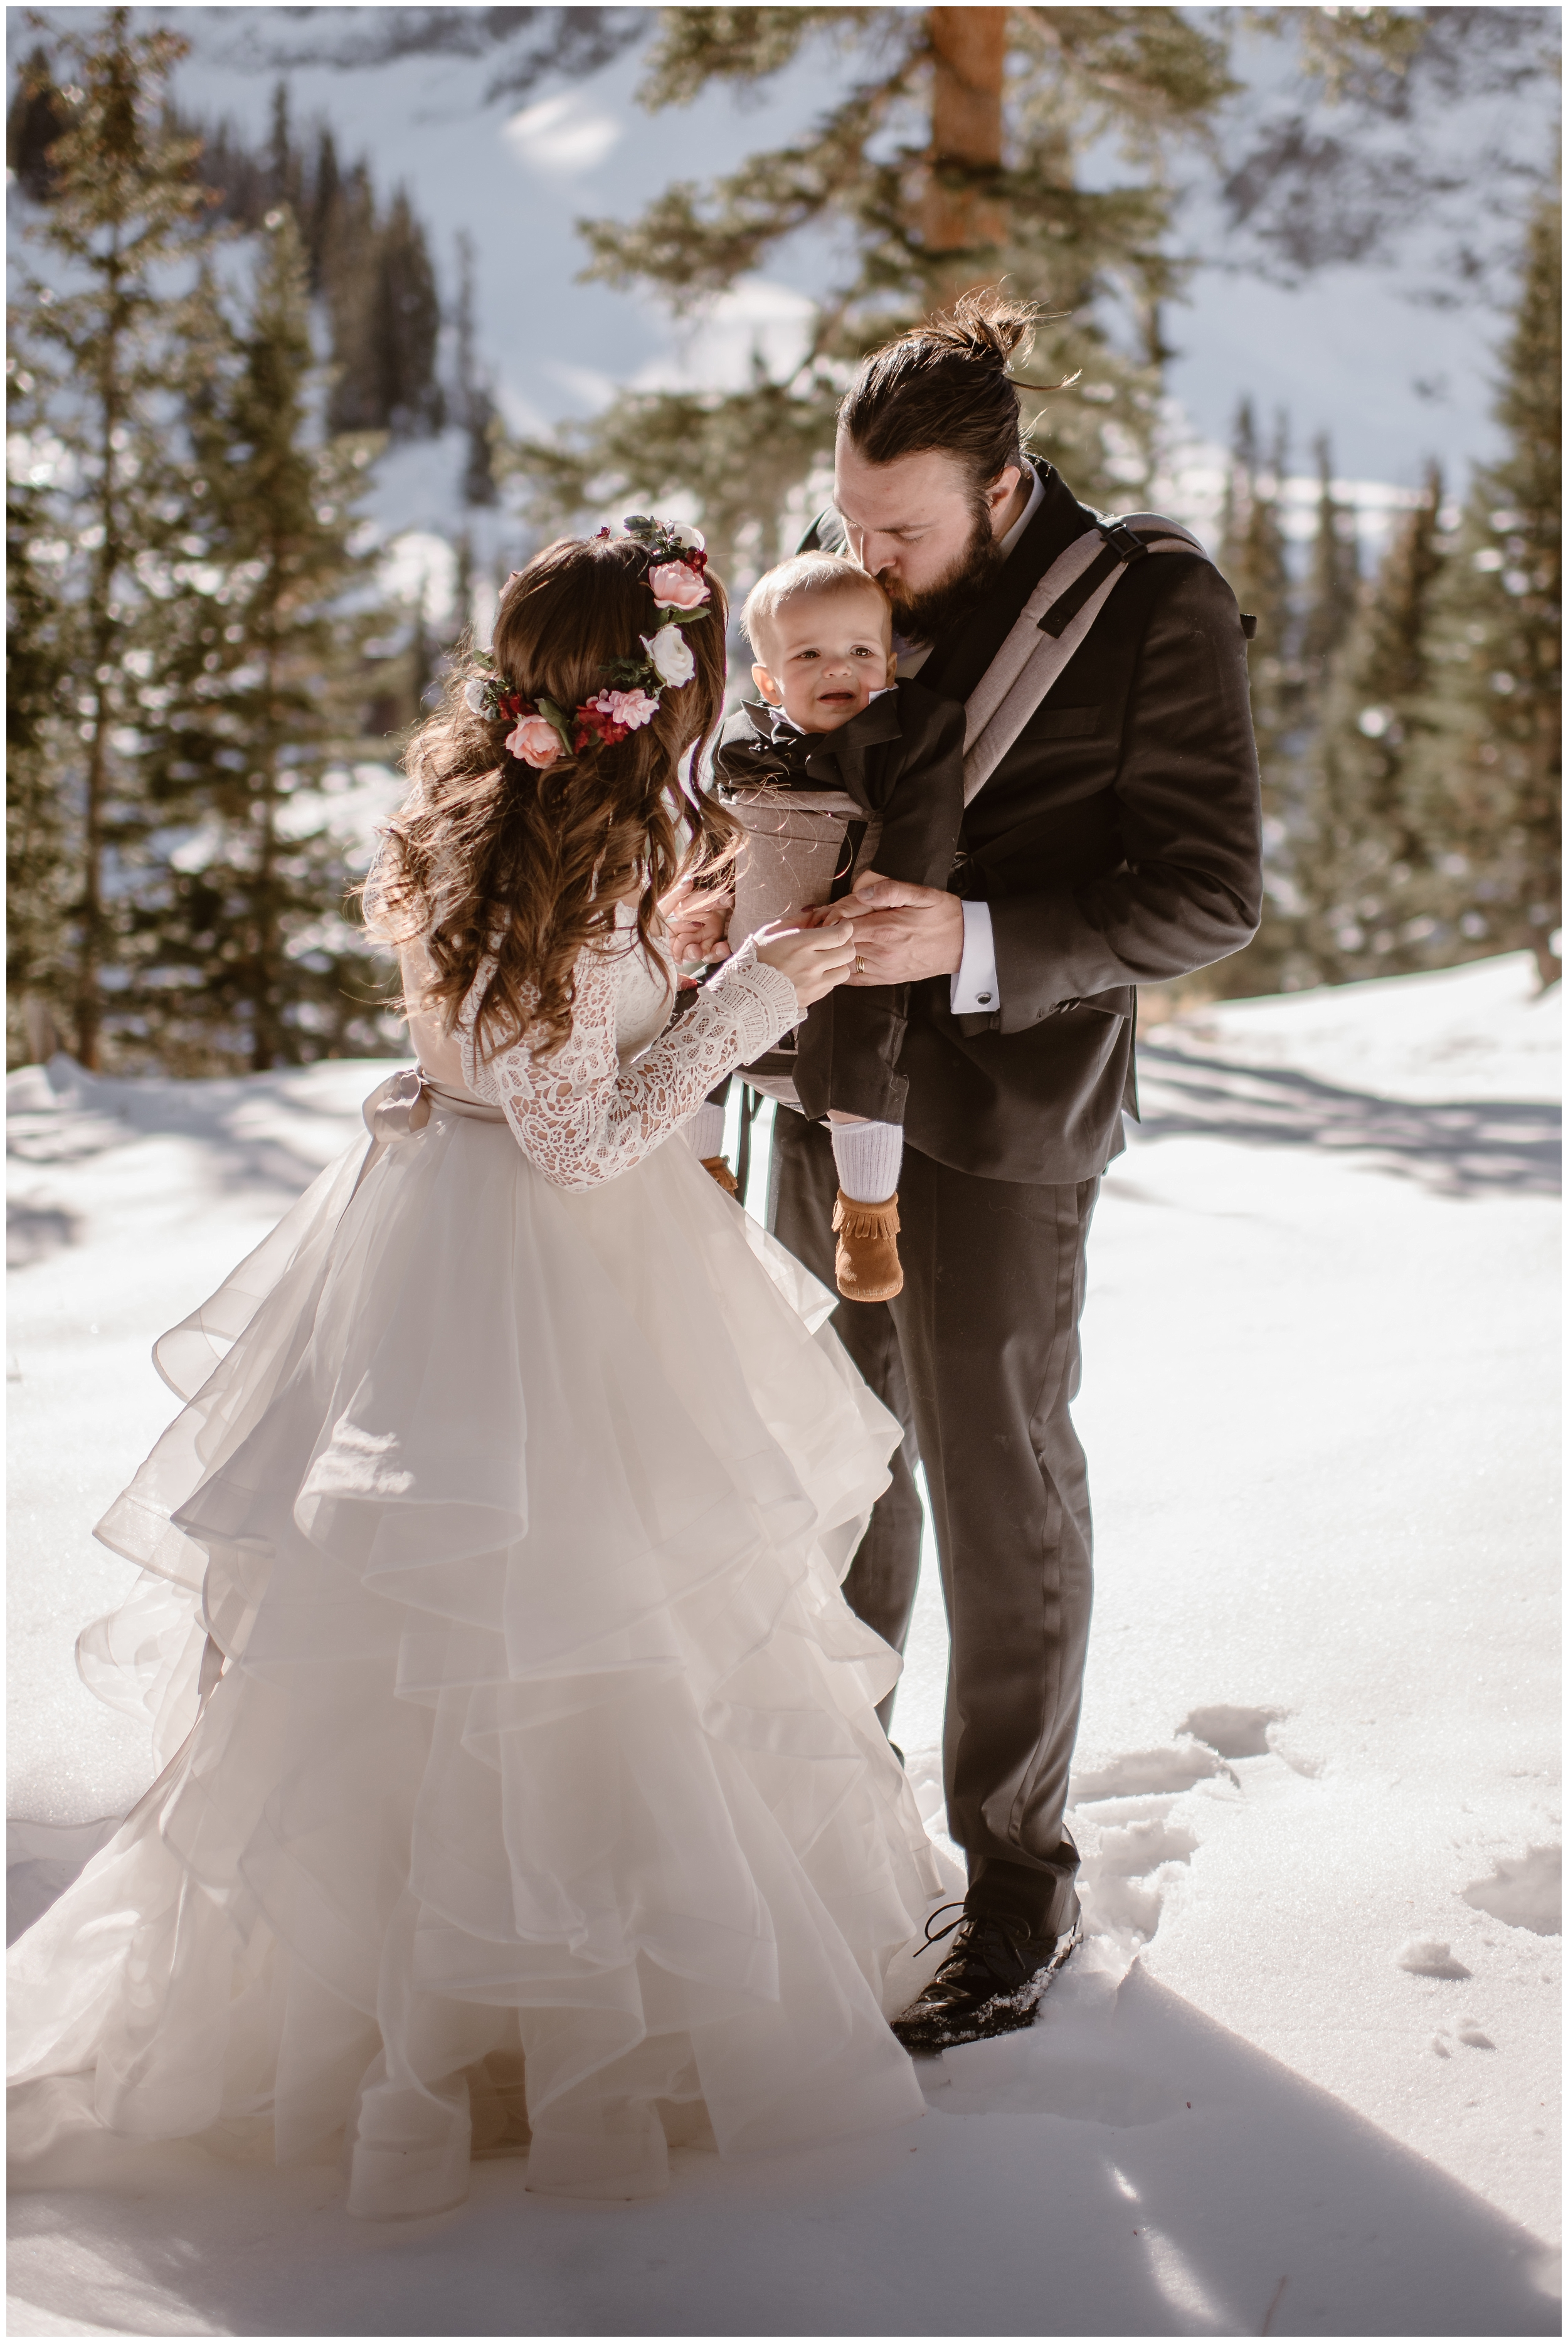 A bride leans in to kiss aher baby who is being held by her groom. The baby, strapped into a carrier on the groom's chest, looks around at the snowy ground and evergreen trees. Eloping with kids can be ias involved as you want!